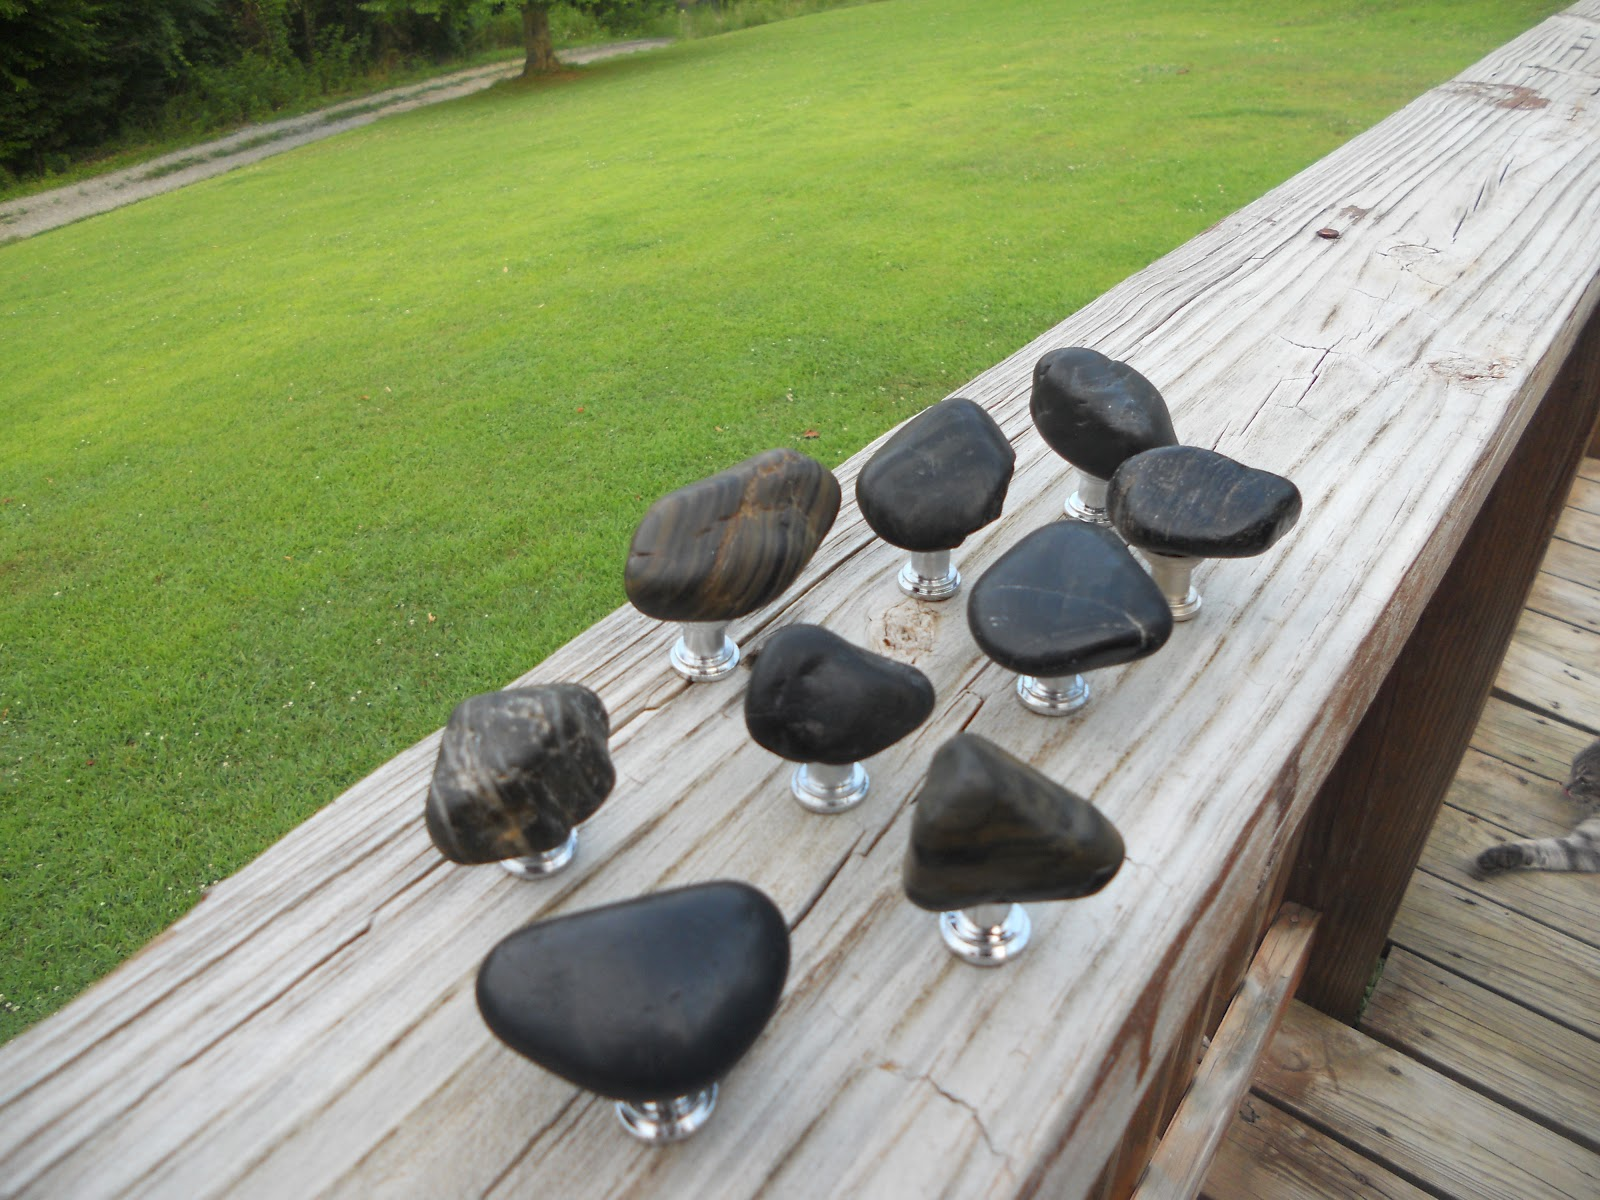 Http://www.river Rock Designs.com/set Of 9 Black Rock Cabinet Knobs/